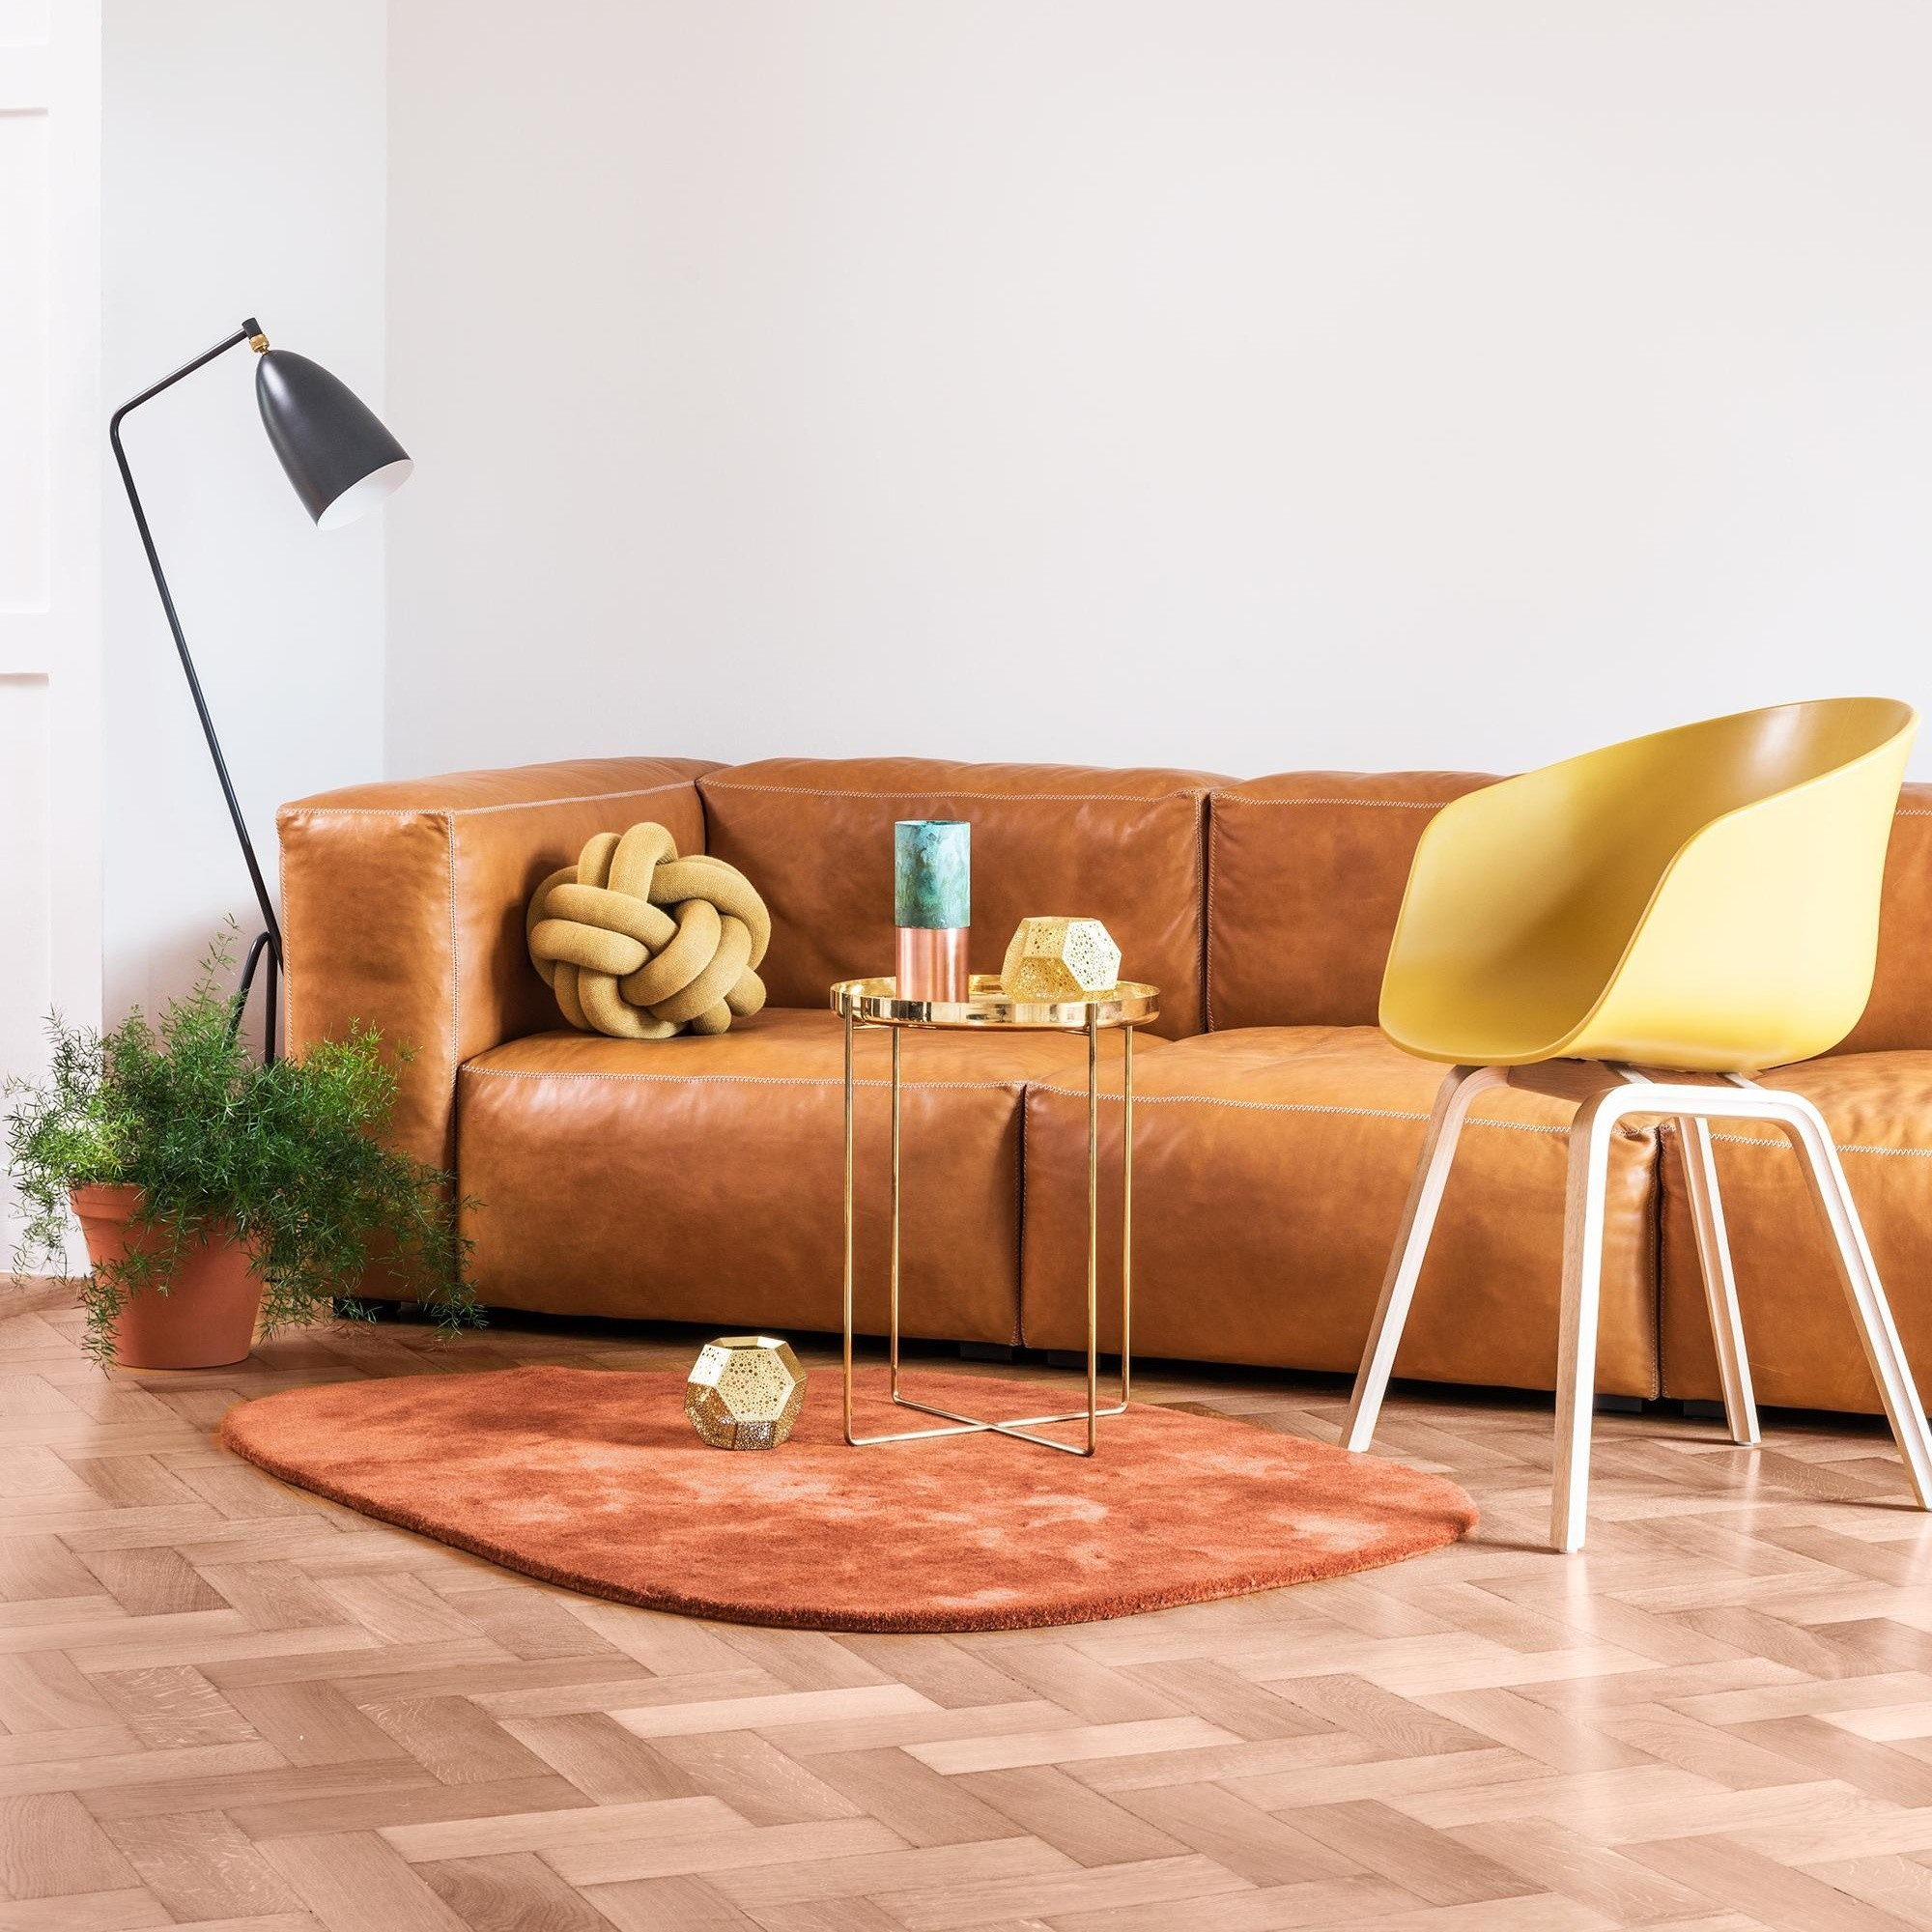 - HAY Mags Soft 3 Seater Sofa Leather 278.5x103.5x67cm AmbienteDirect